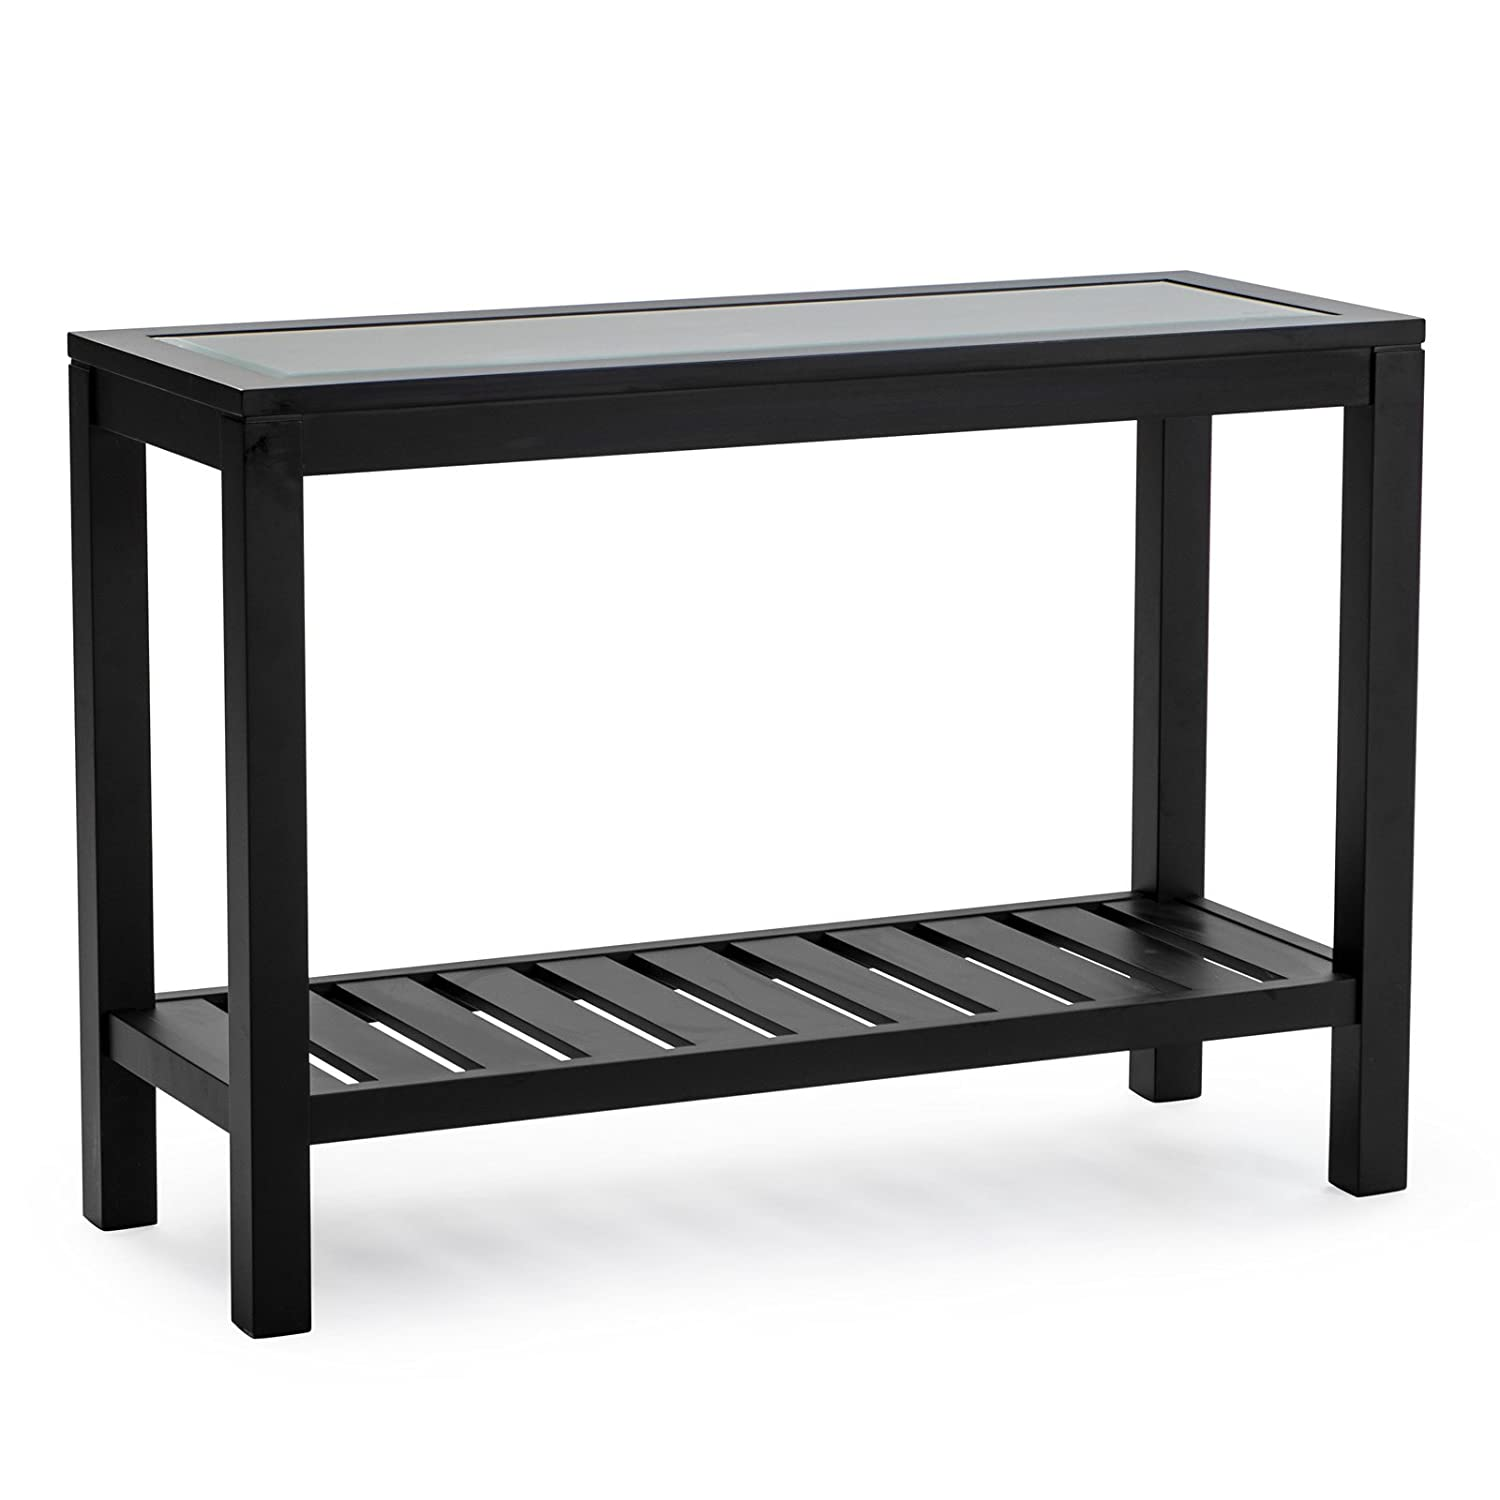 Amazon Sutton Glass Top Console Table with Slat Bottom